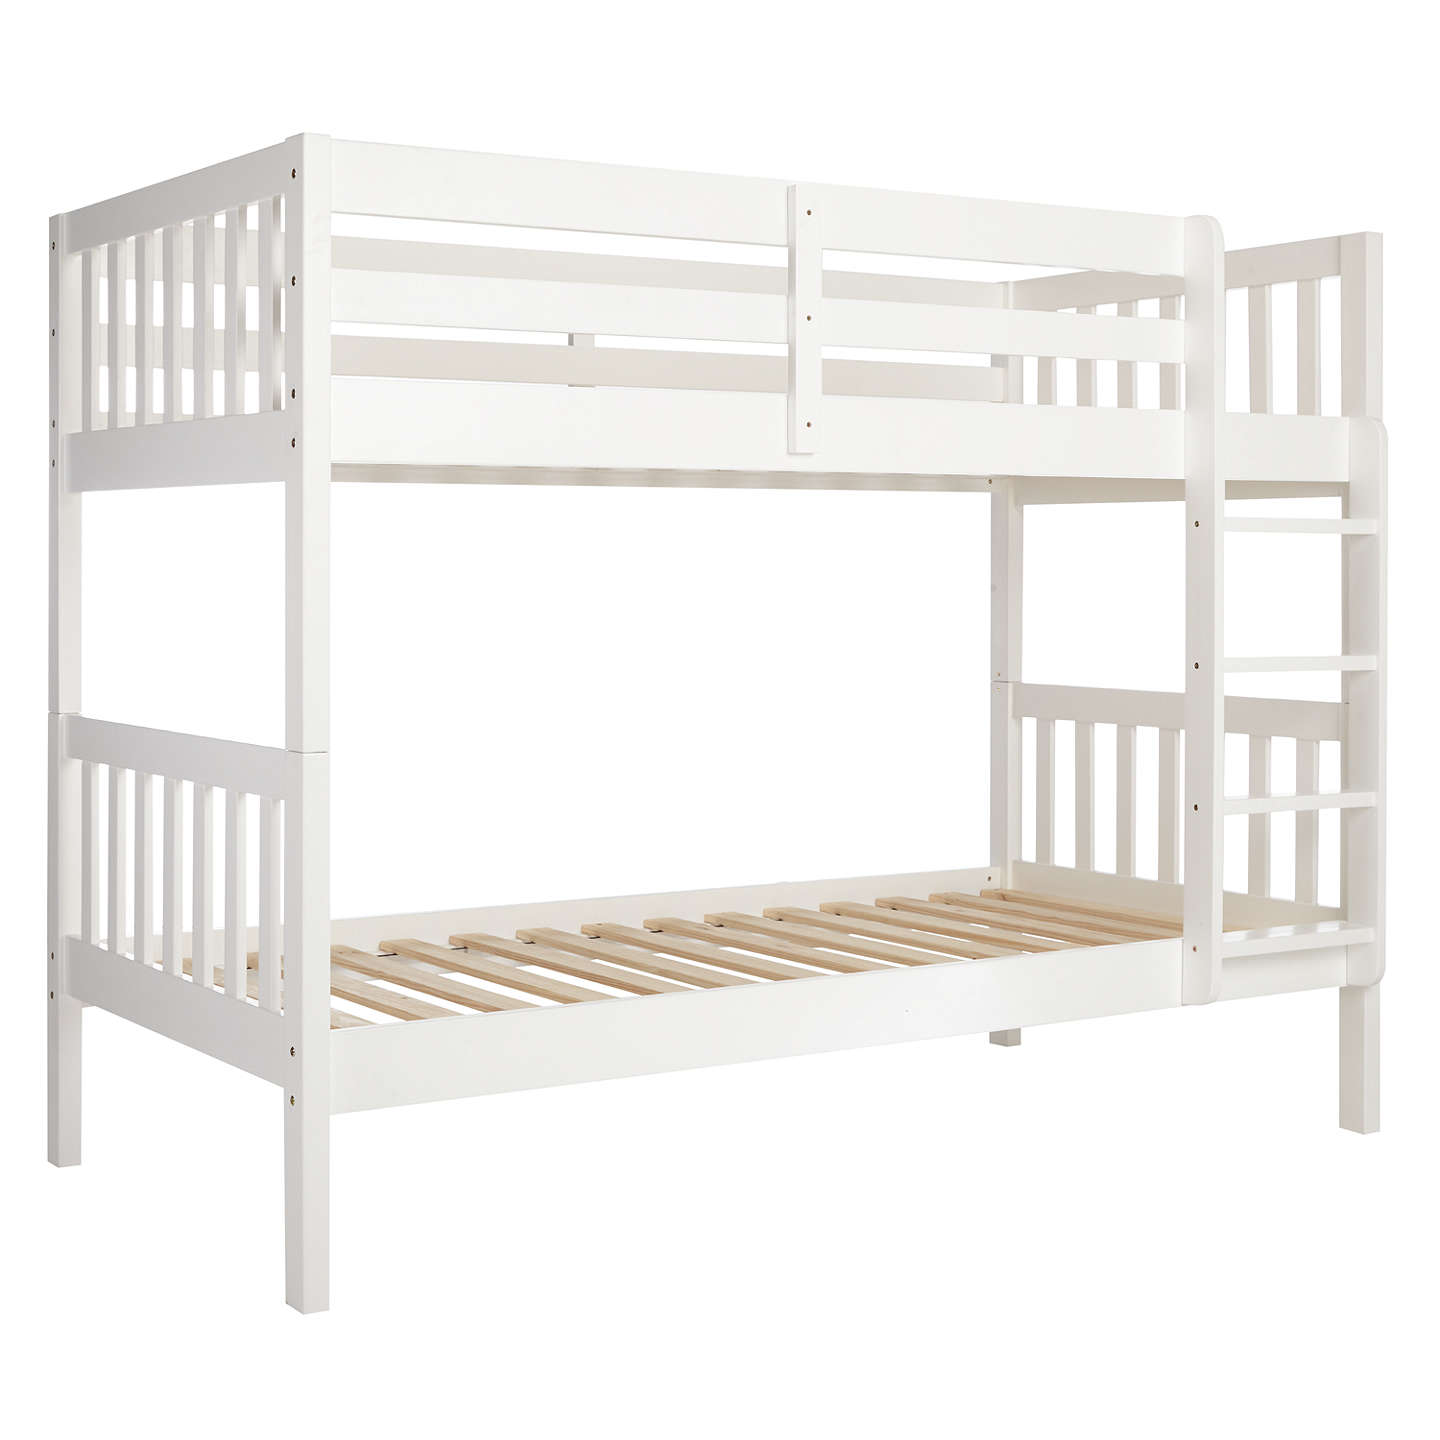 finish pine white wooden bed adults solid kids happy sleeper atlantis beds bunk triple and for